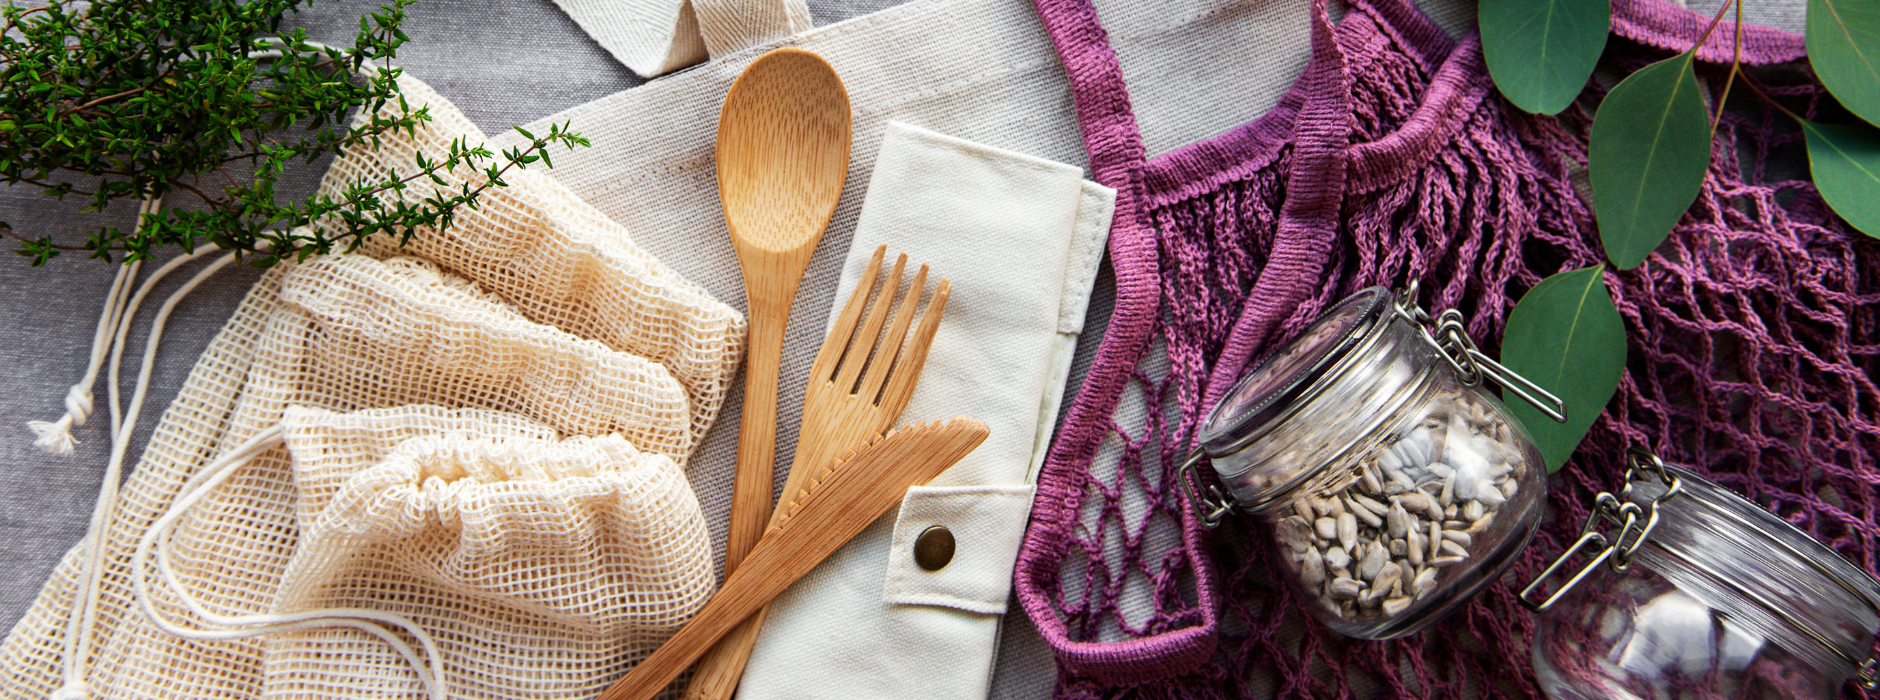 Eco-friendly Tips for Everyday Living - sustainable items